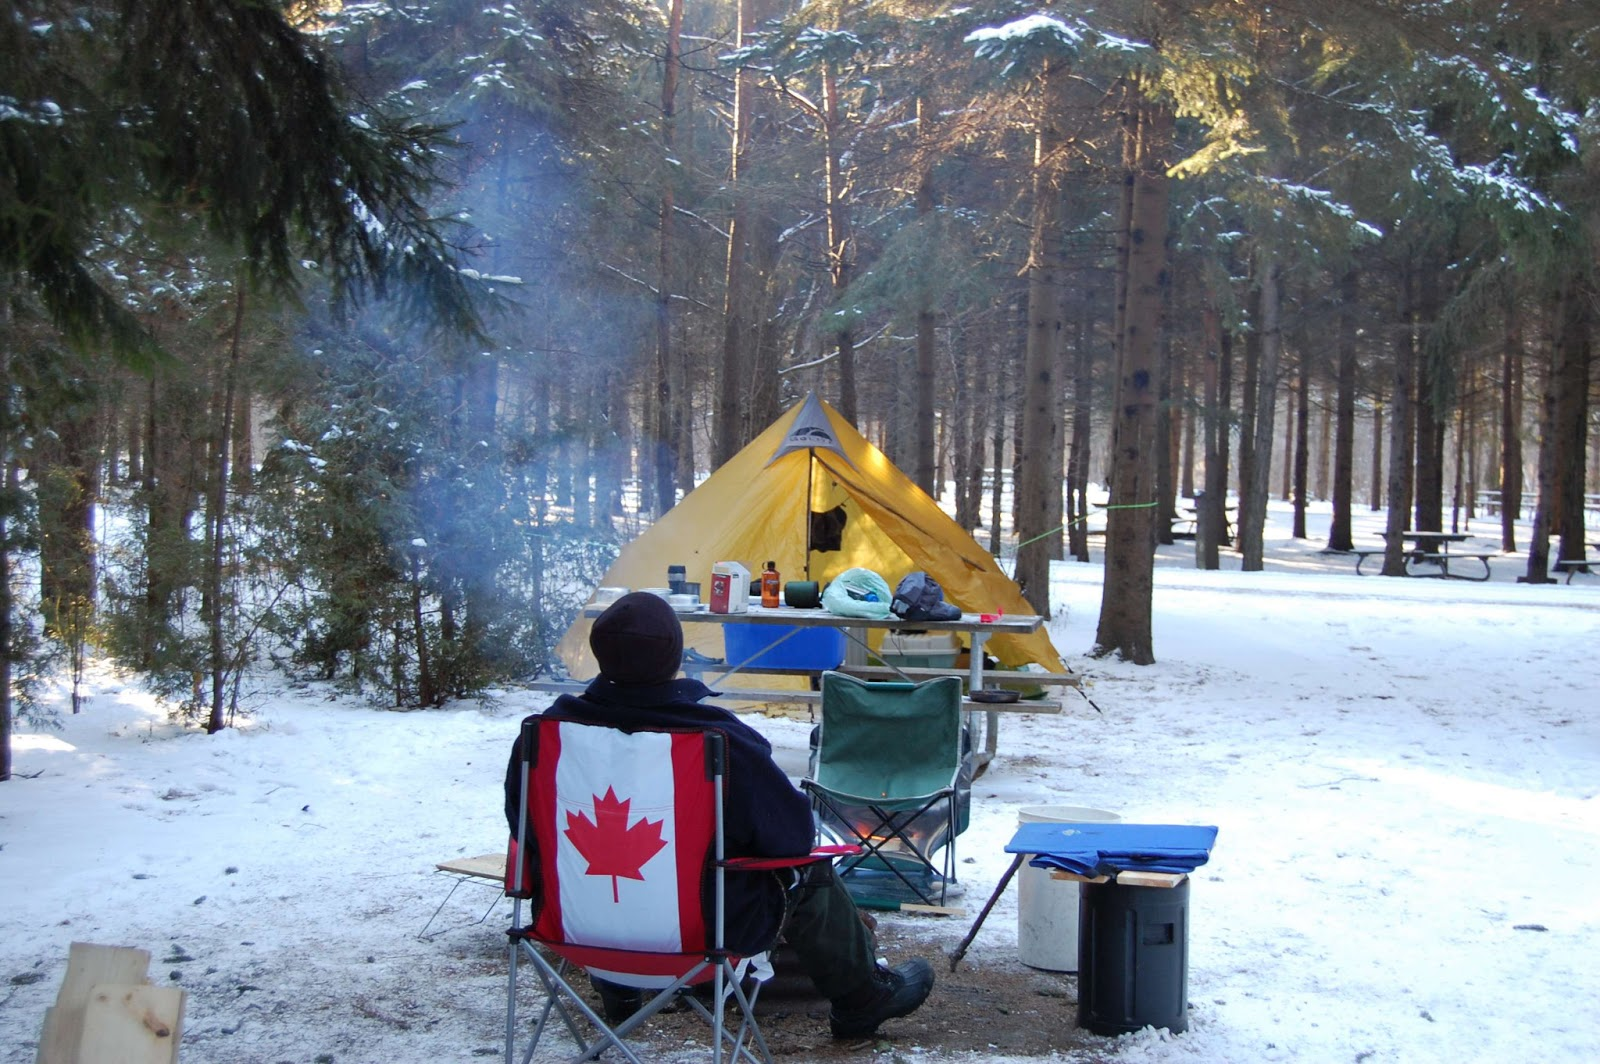 Hamilton Conservation: Winter brings a chance to ...